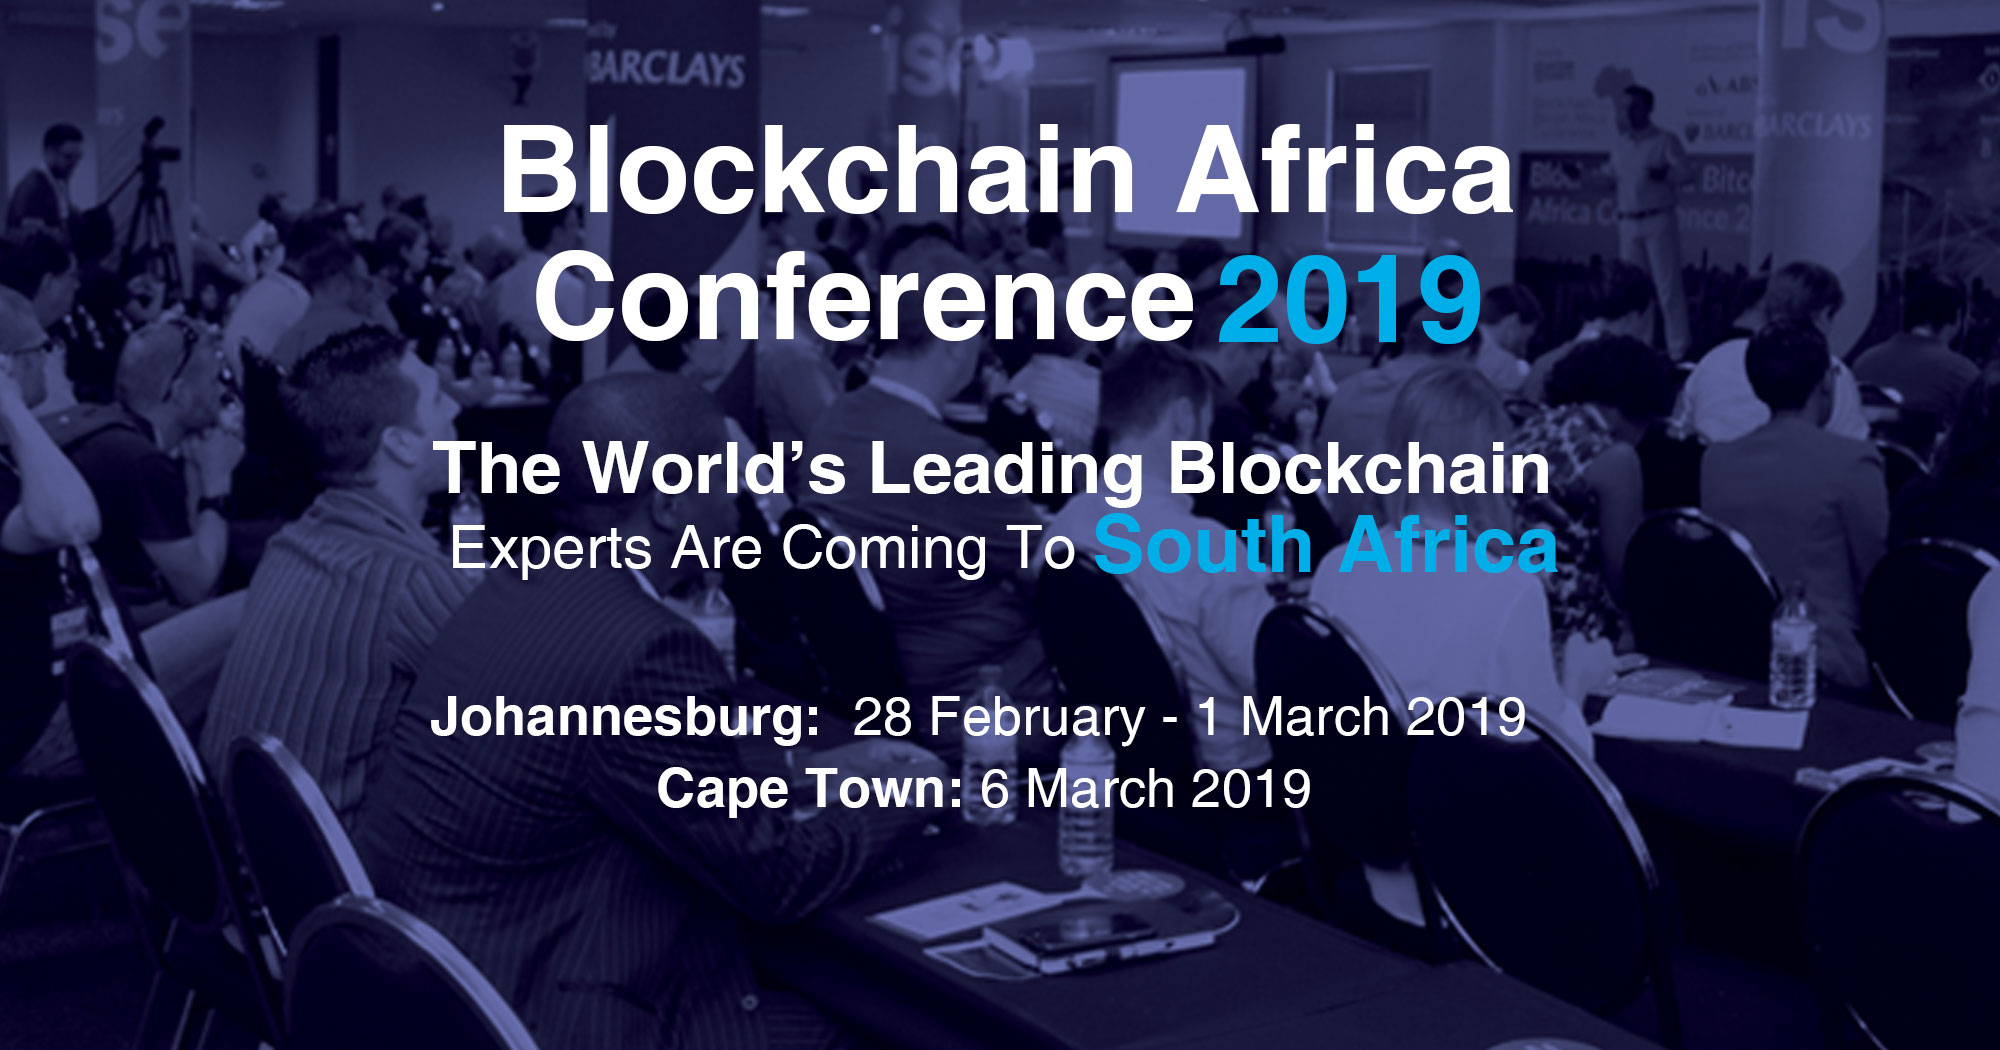 blockchain africa conference speakers announced